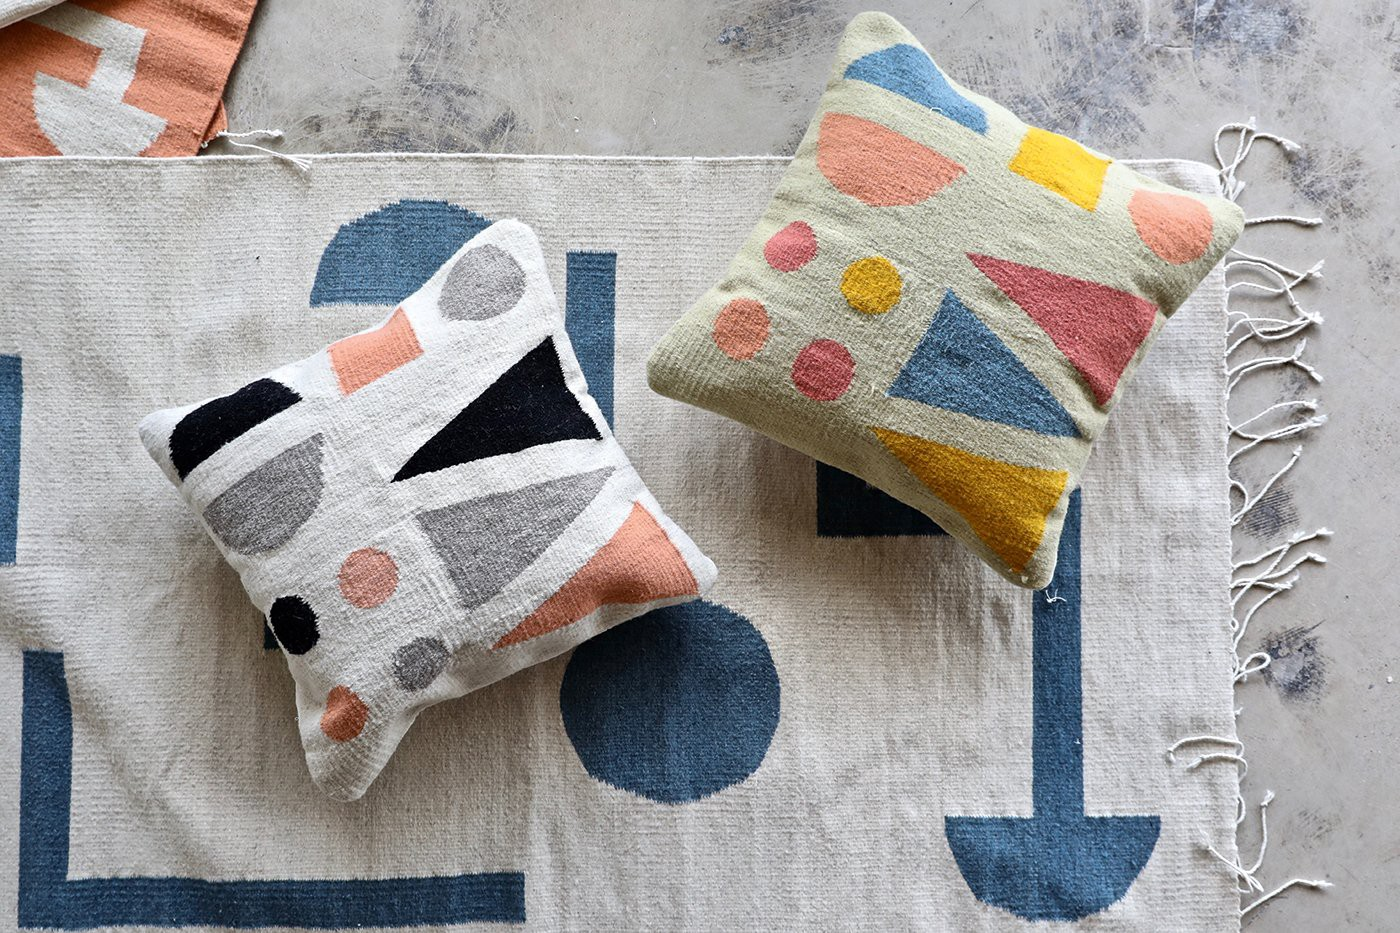 Nåde's geometric textiles are made by Mexican artisans. (Photo: Maggie Pate, The New Mediterranean)